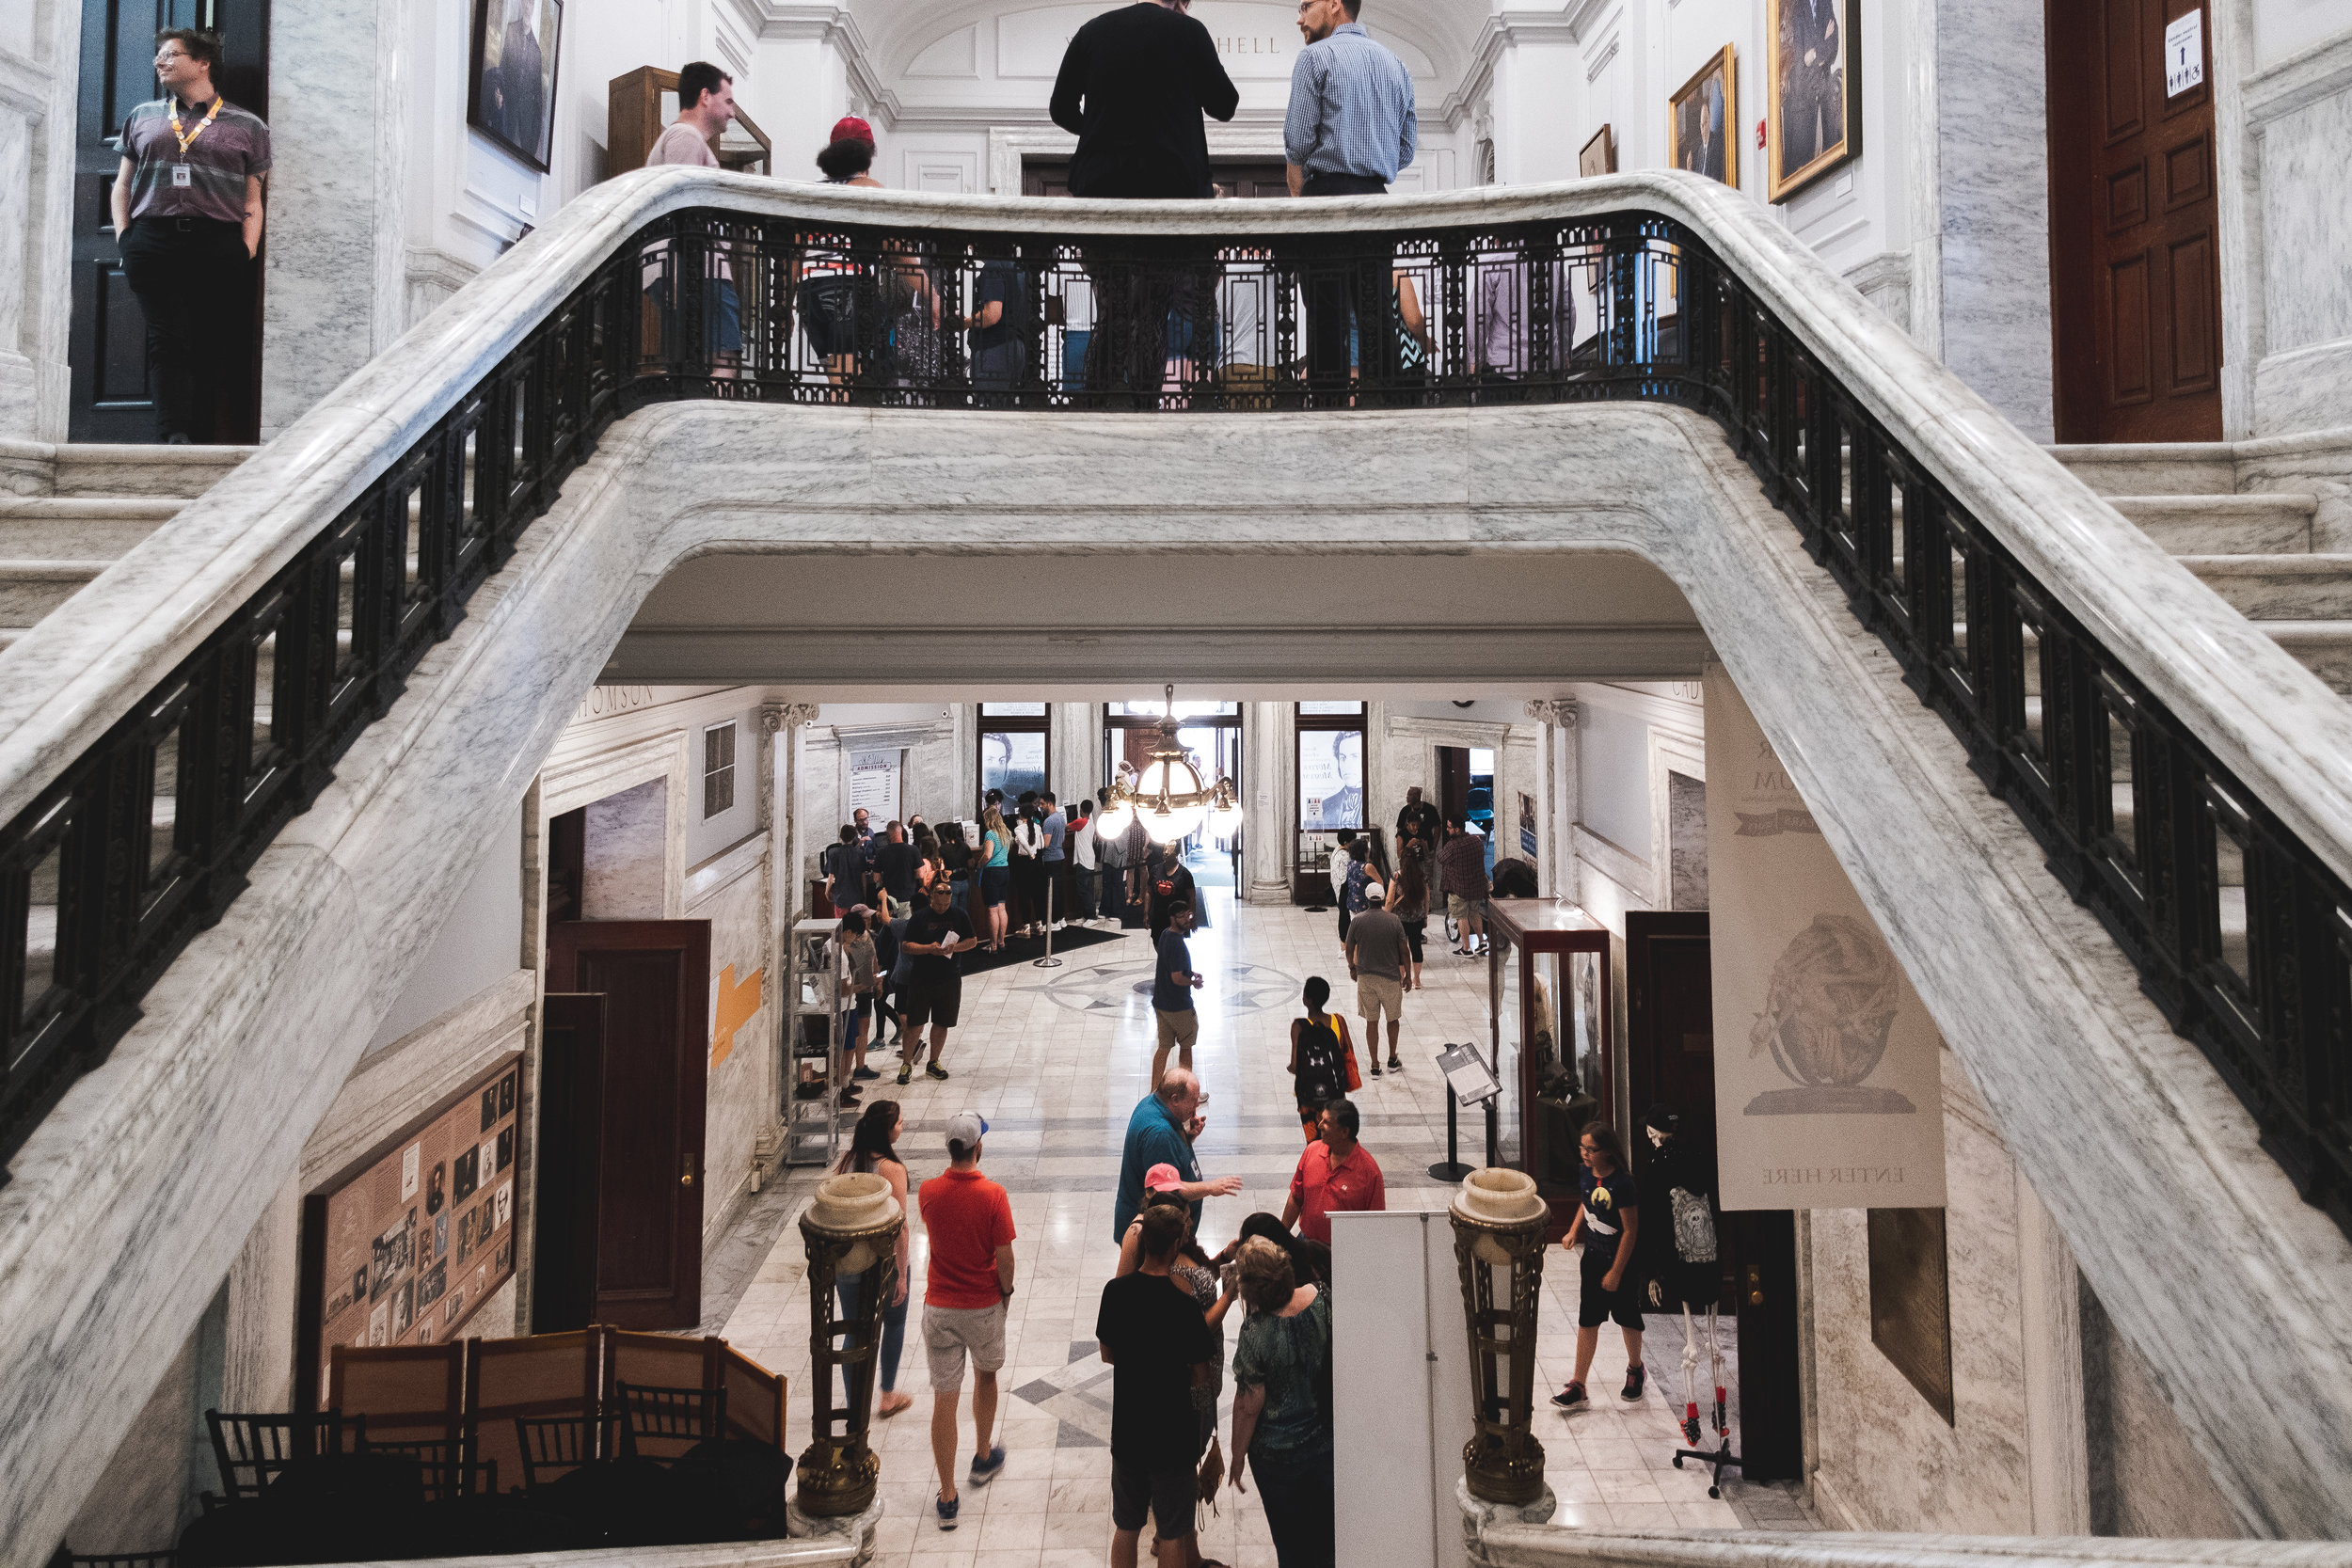 2019_MUTTER MUSEUM_MUSEUM_THE PHILLY CHECKLIST-17.jpg